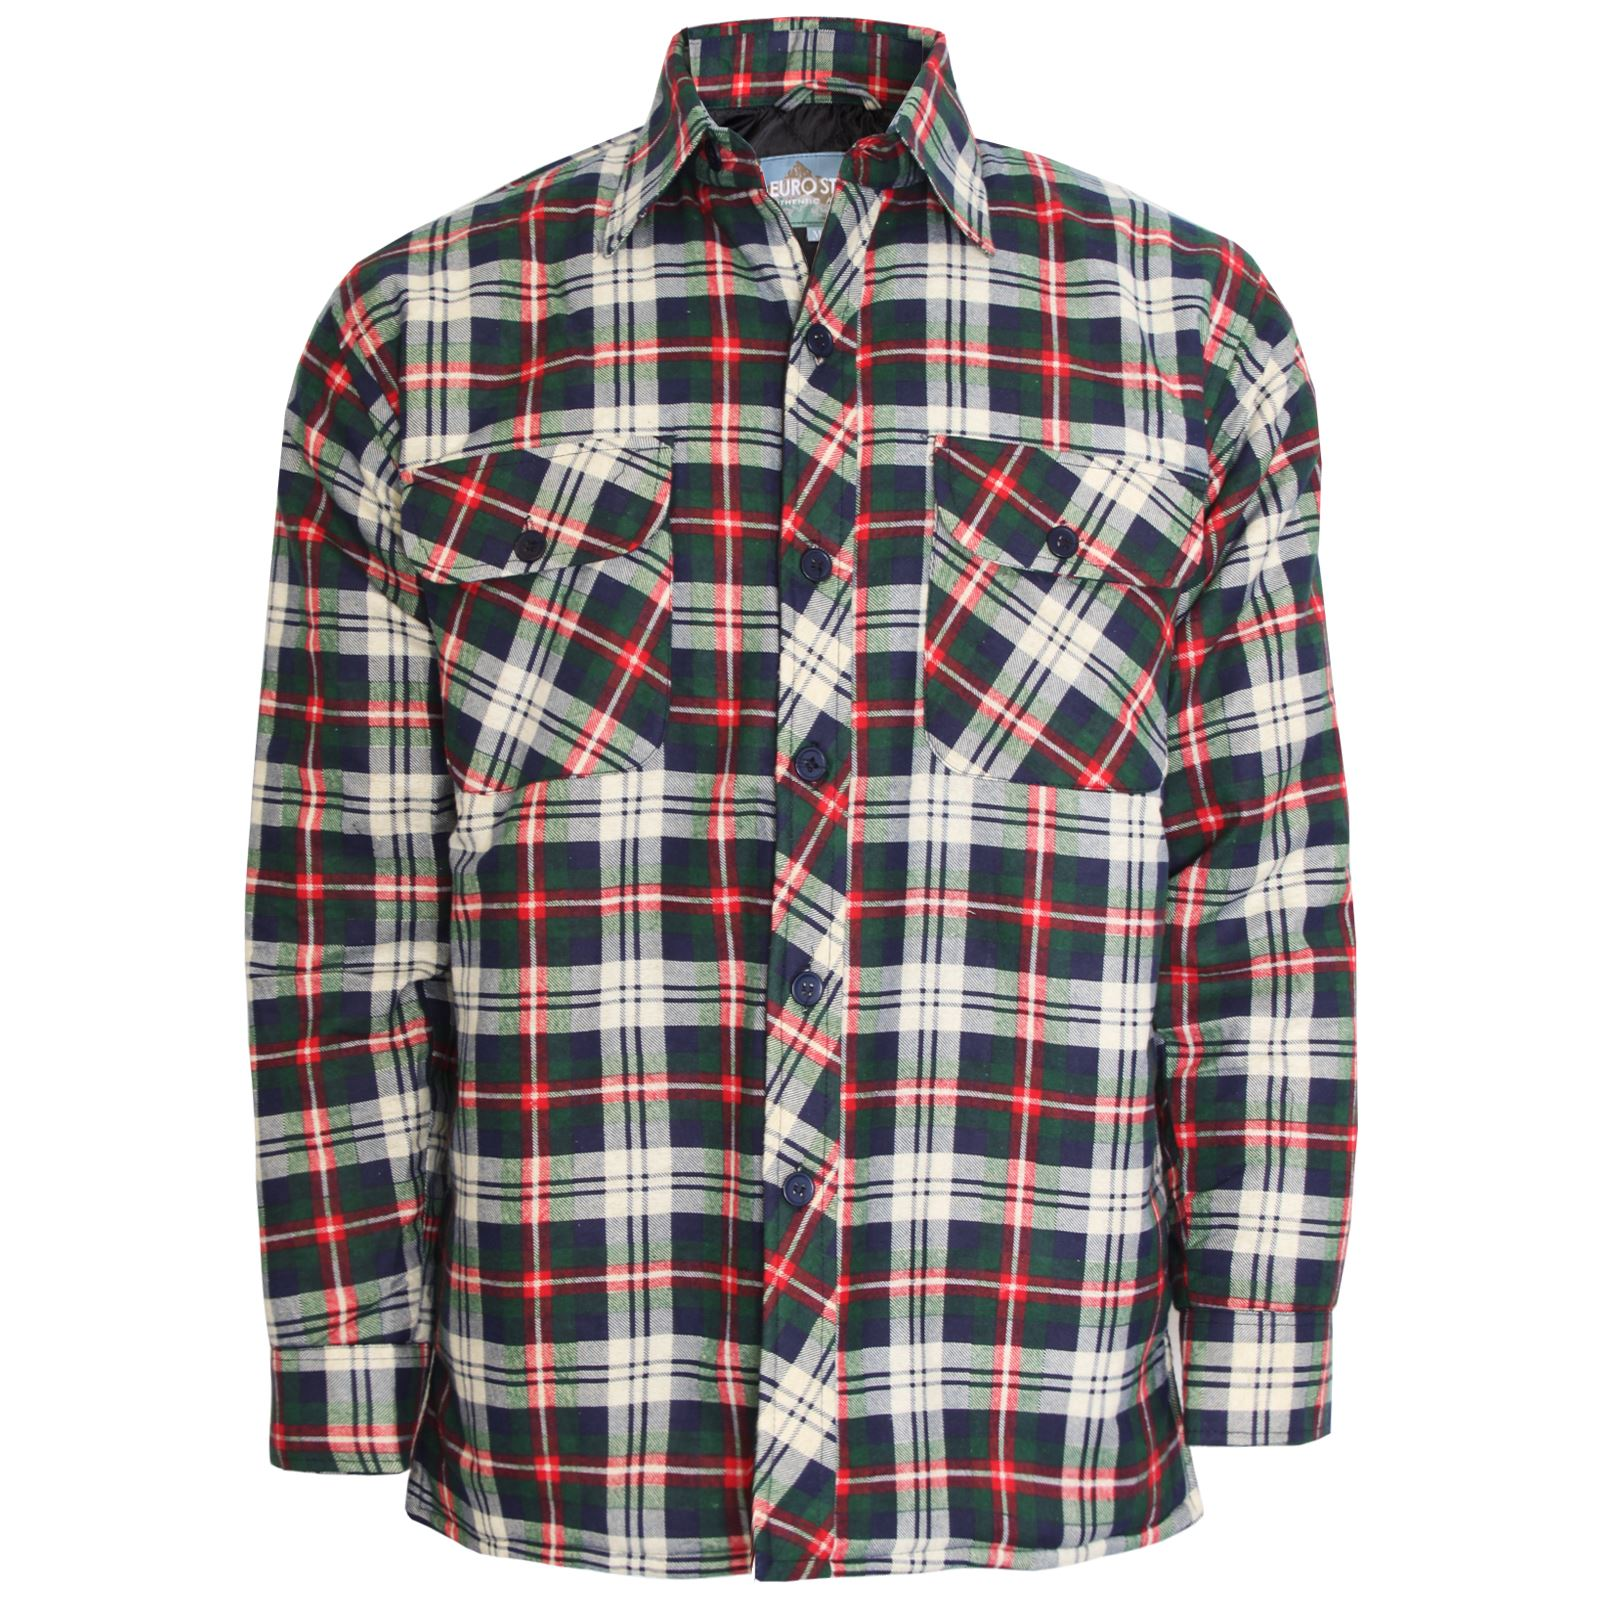 shirt jacket plaid qlt quilted quilt men prod hei p spin wid wrangler flannel s